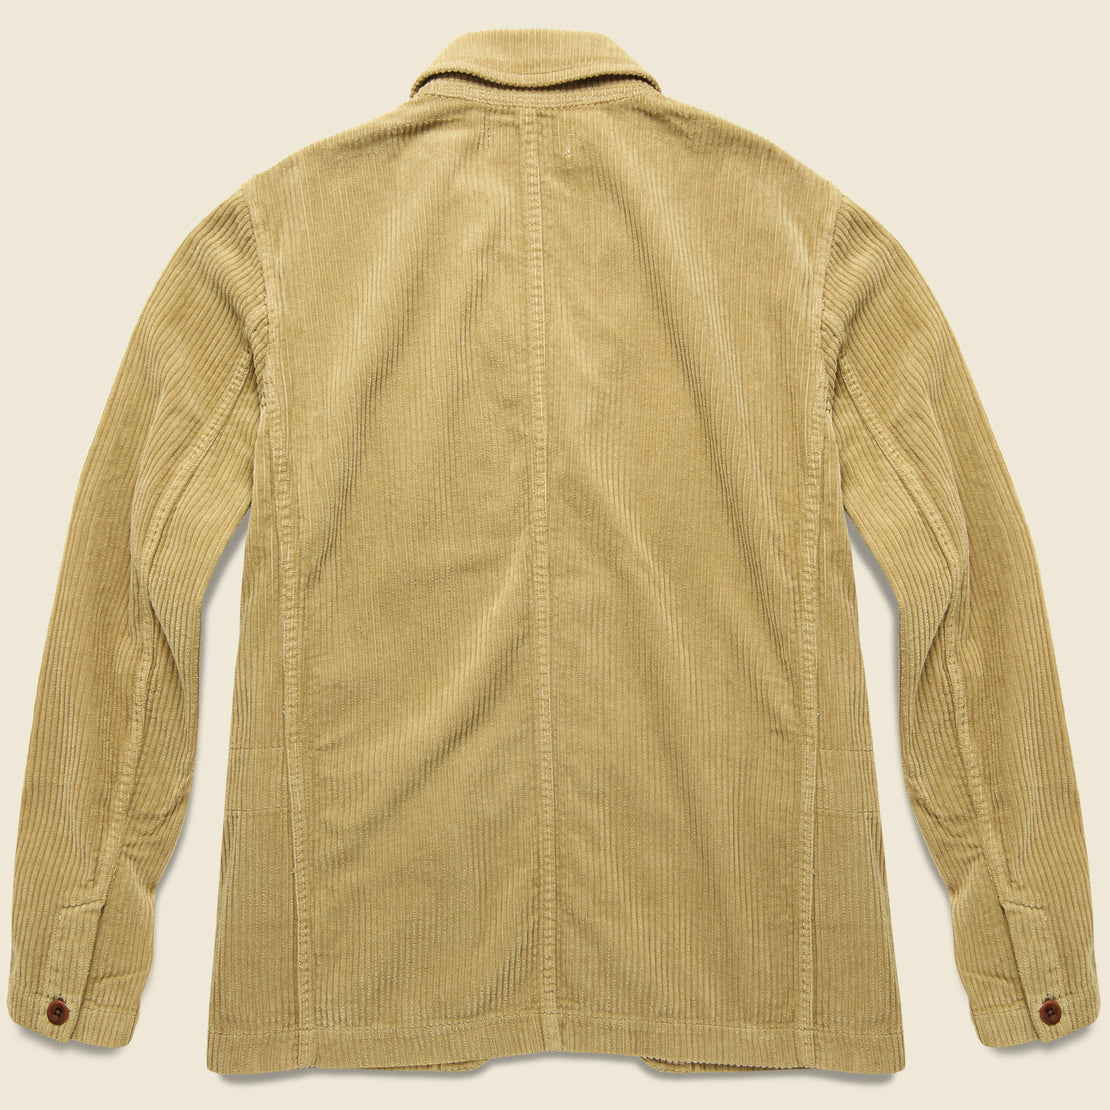 Rugged Cord Sack Jacket - Khaki